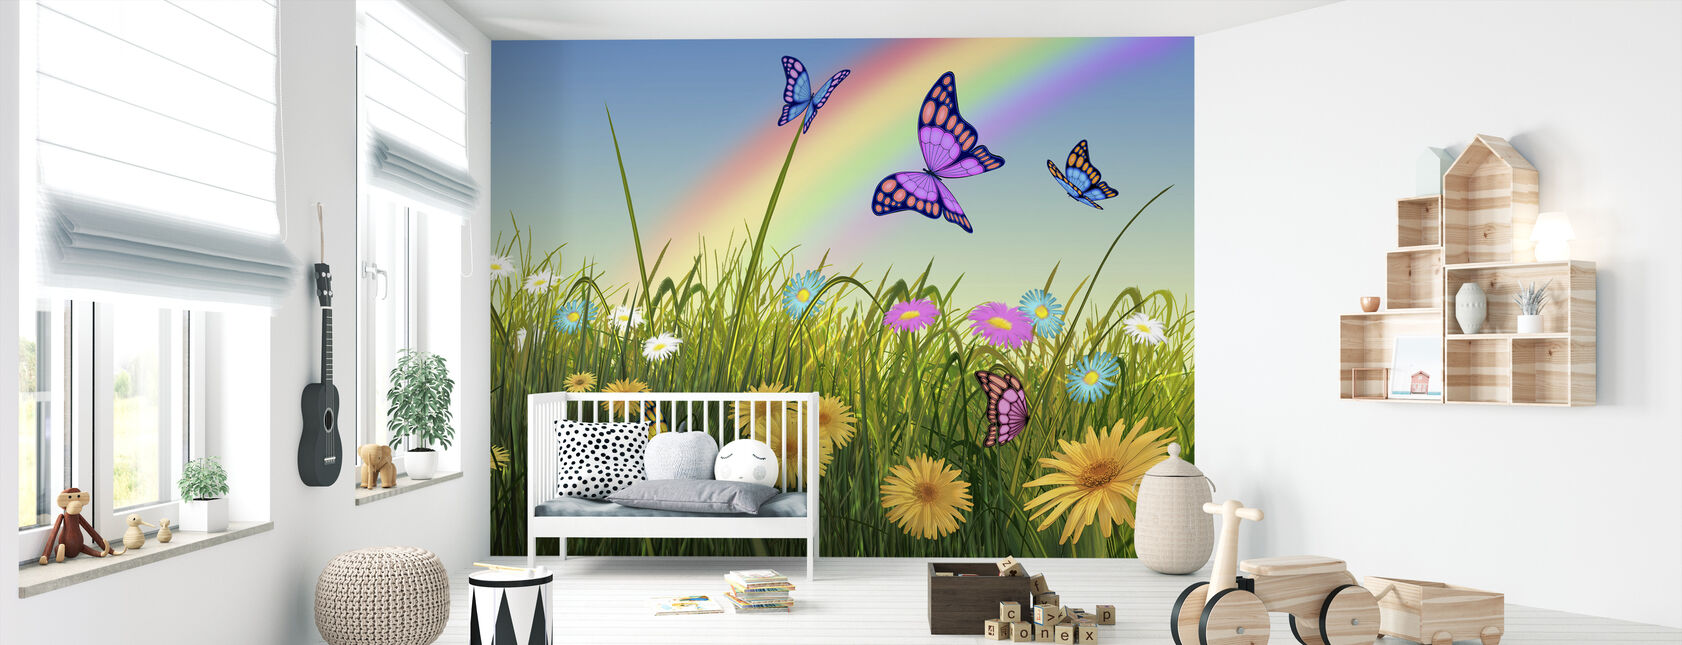 End of the Rainbow - Wallpaper - Nursery